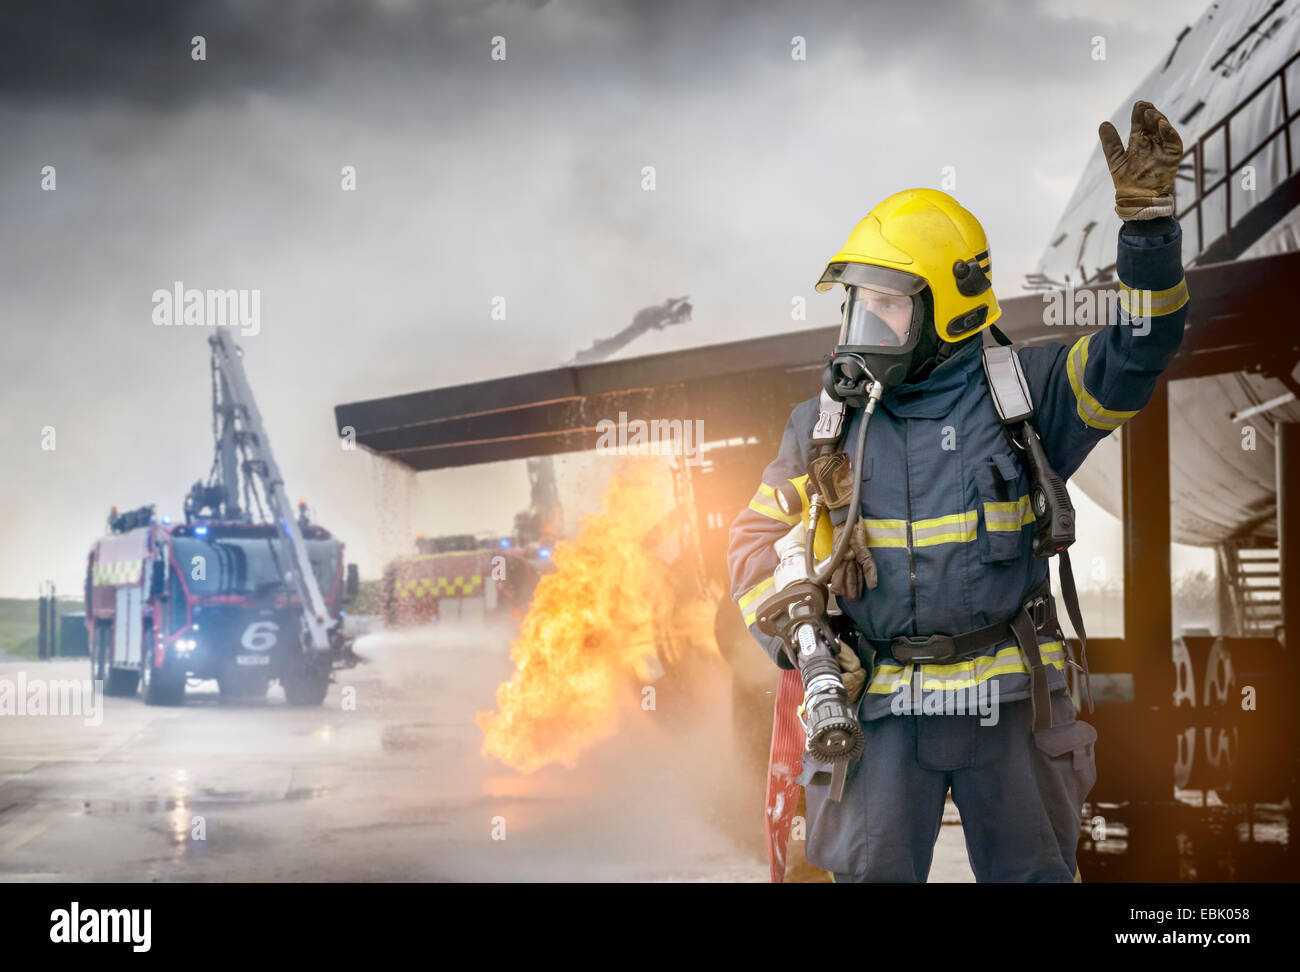 Portrait of fireman in front of simulated fire at airport training facility - Stock Image